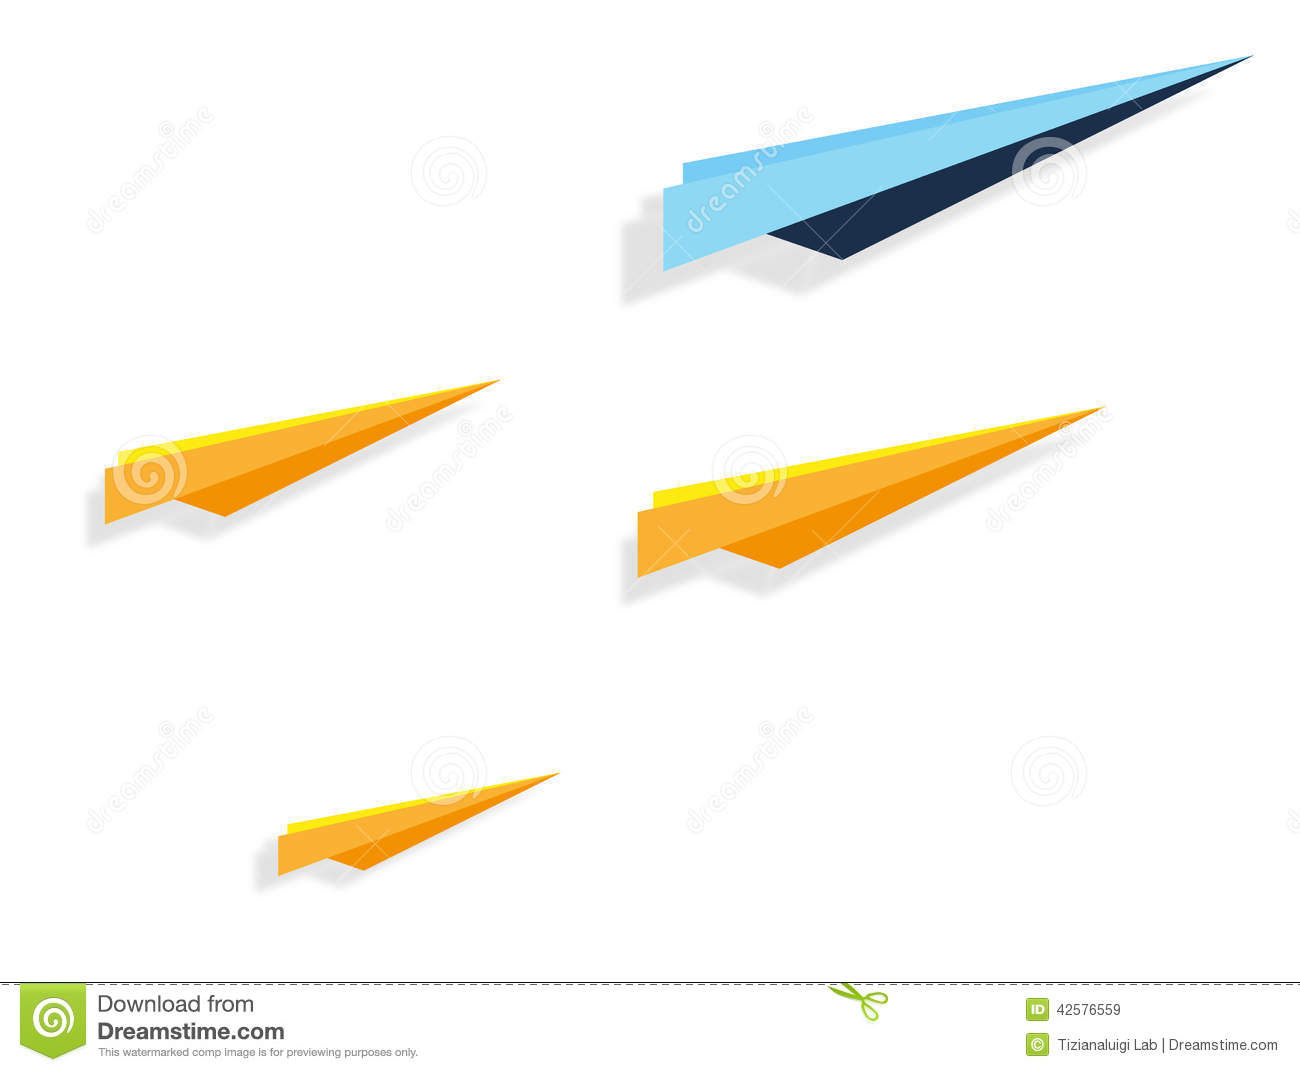 how to create a paper airplane that turns